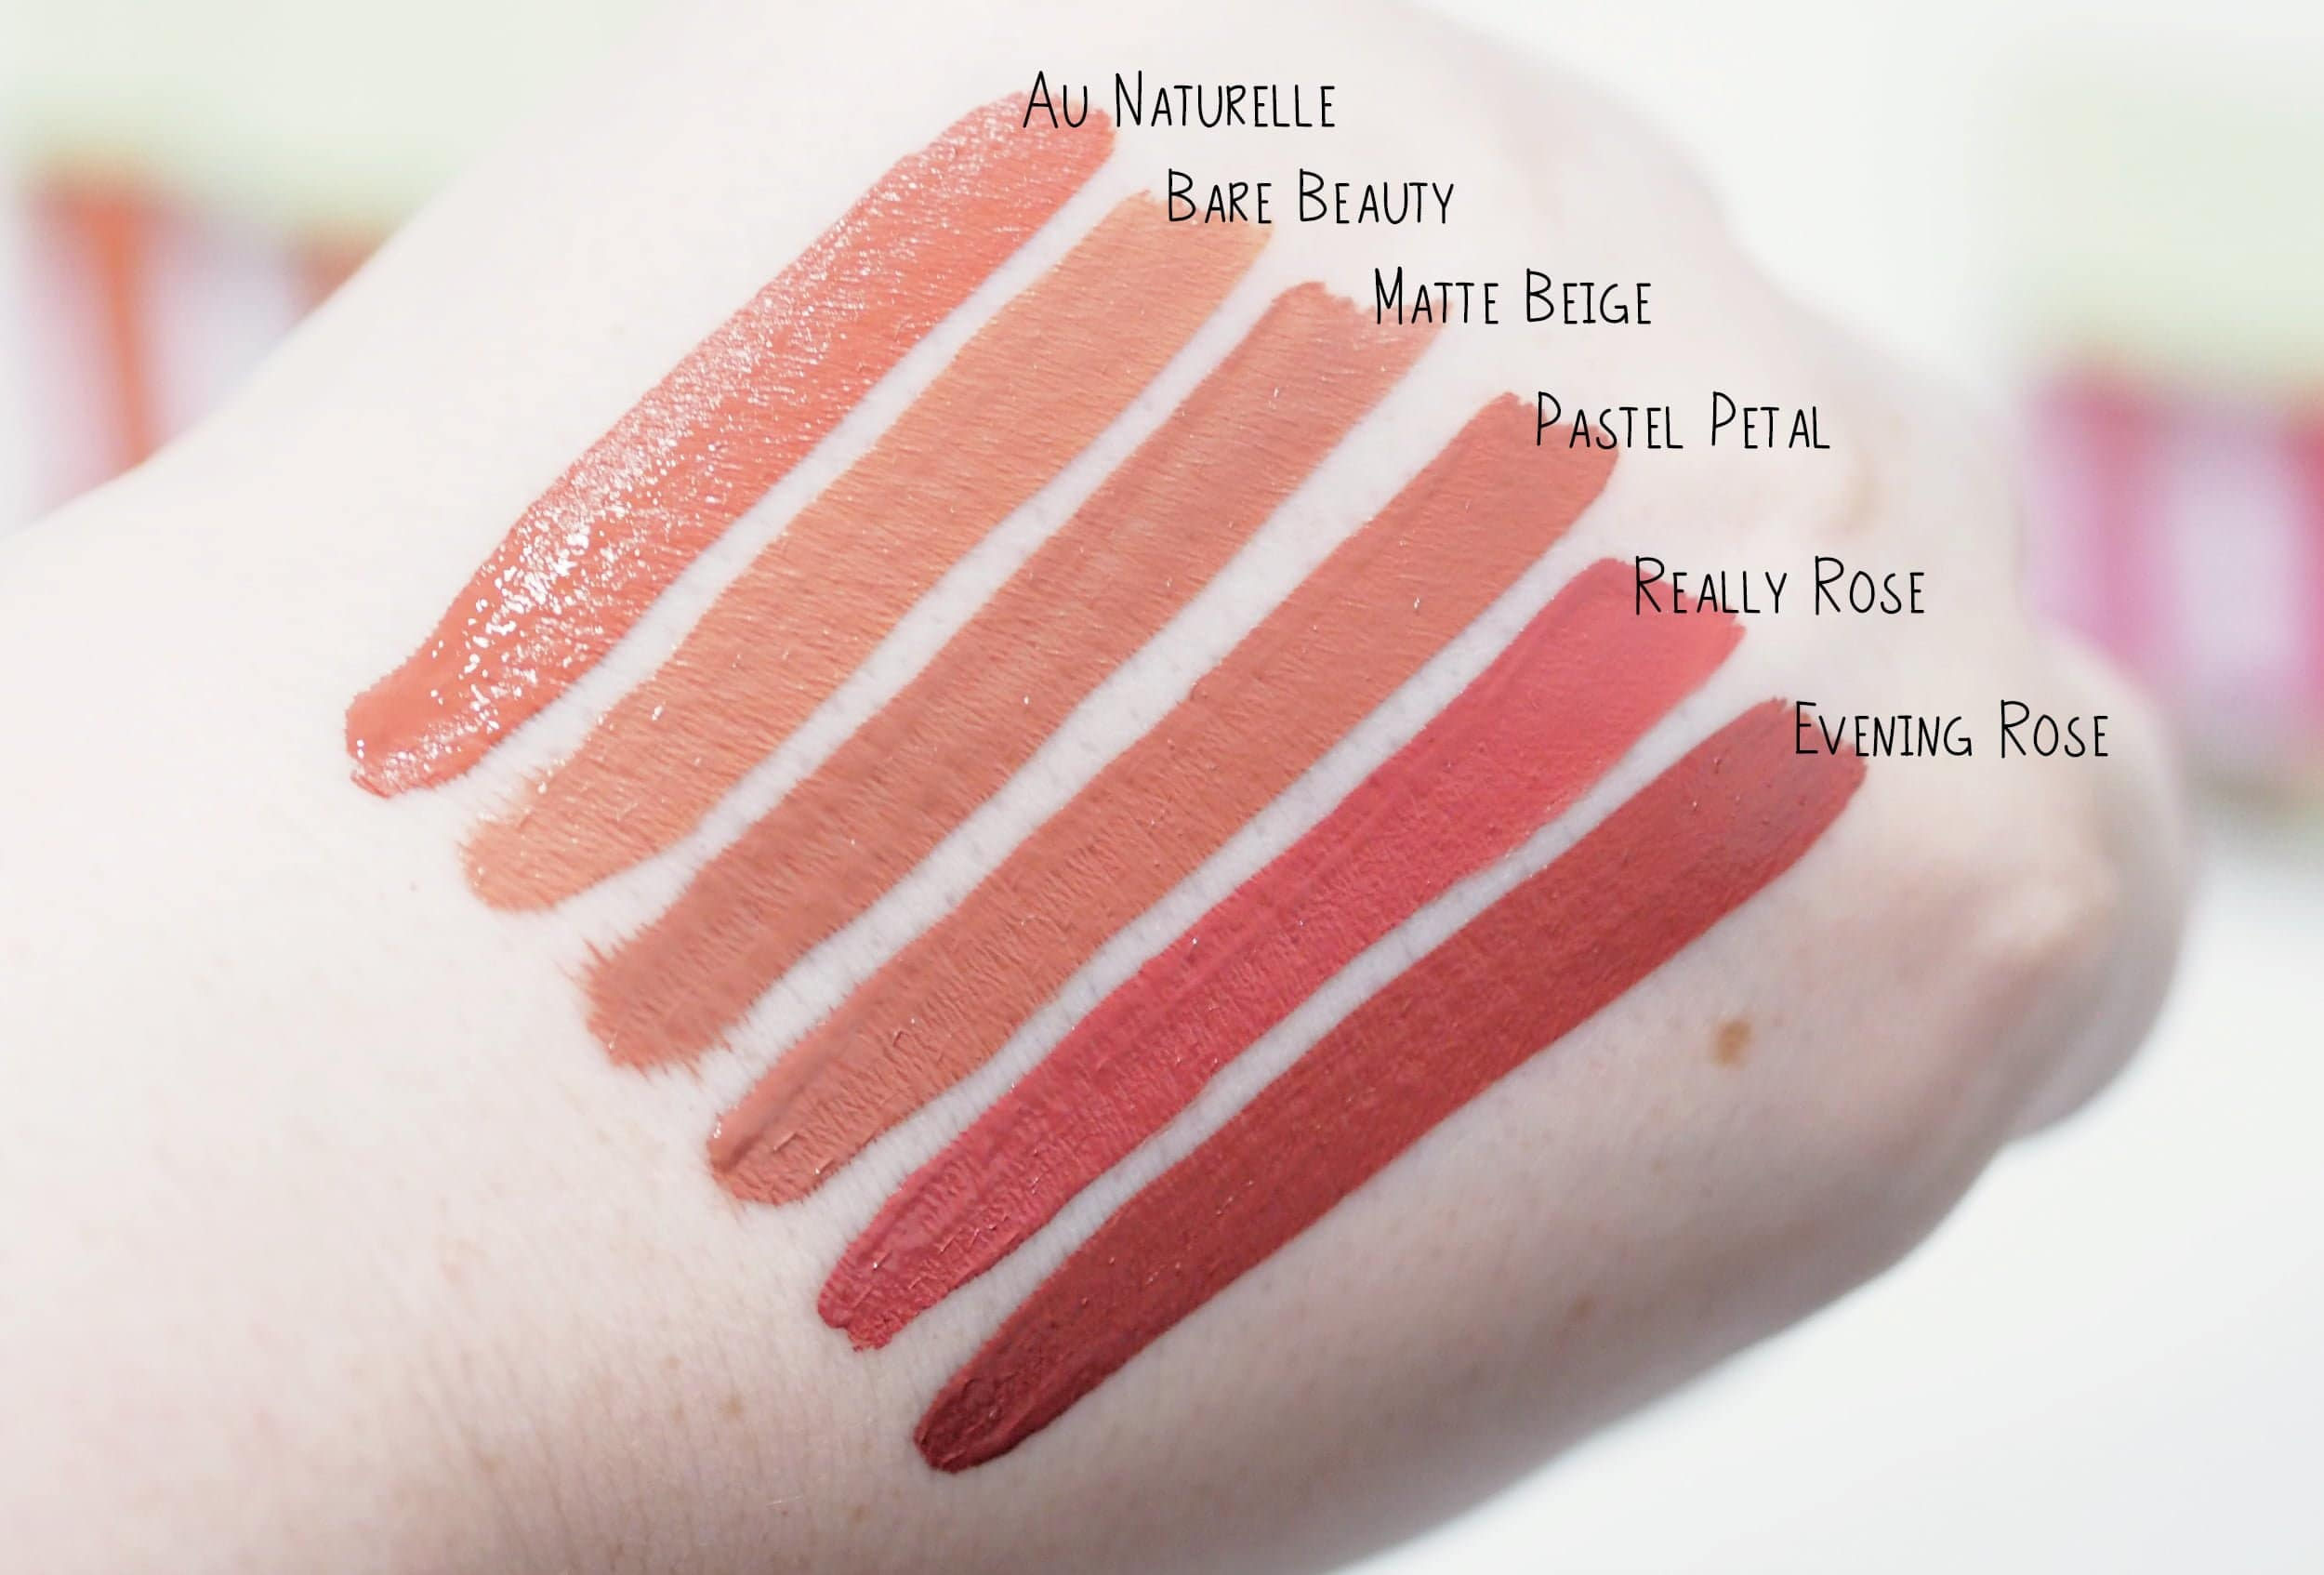 Review and Swatches of the Pixi MatteLast Liquid Lip Collection including all 11 shades ft. Au Naturelle, Bare Beauty, Matte Beige, Pastel Petal and more